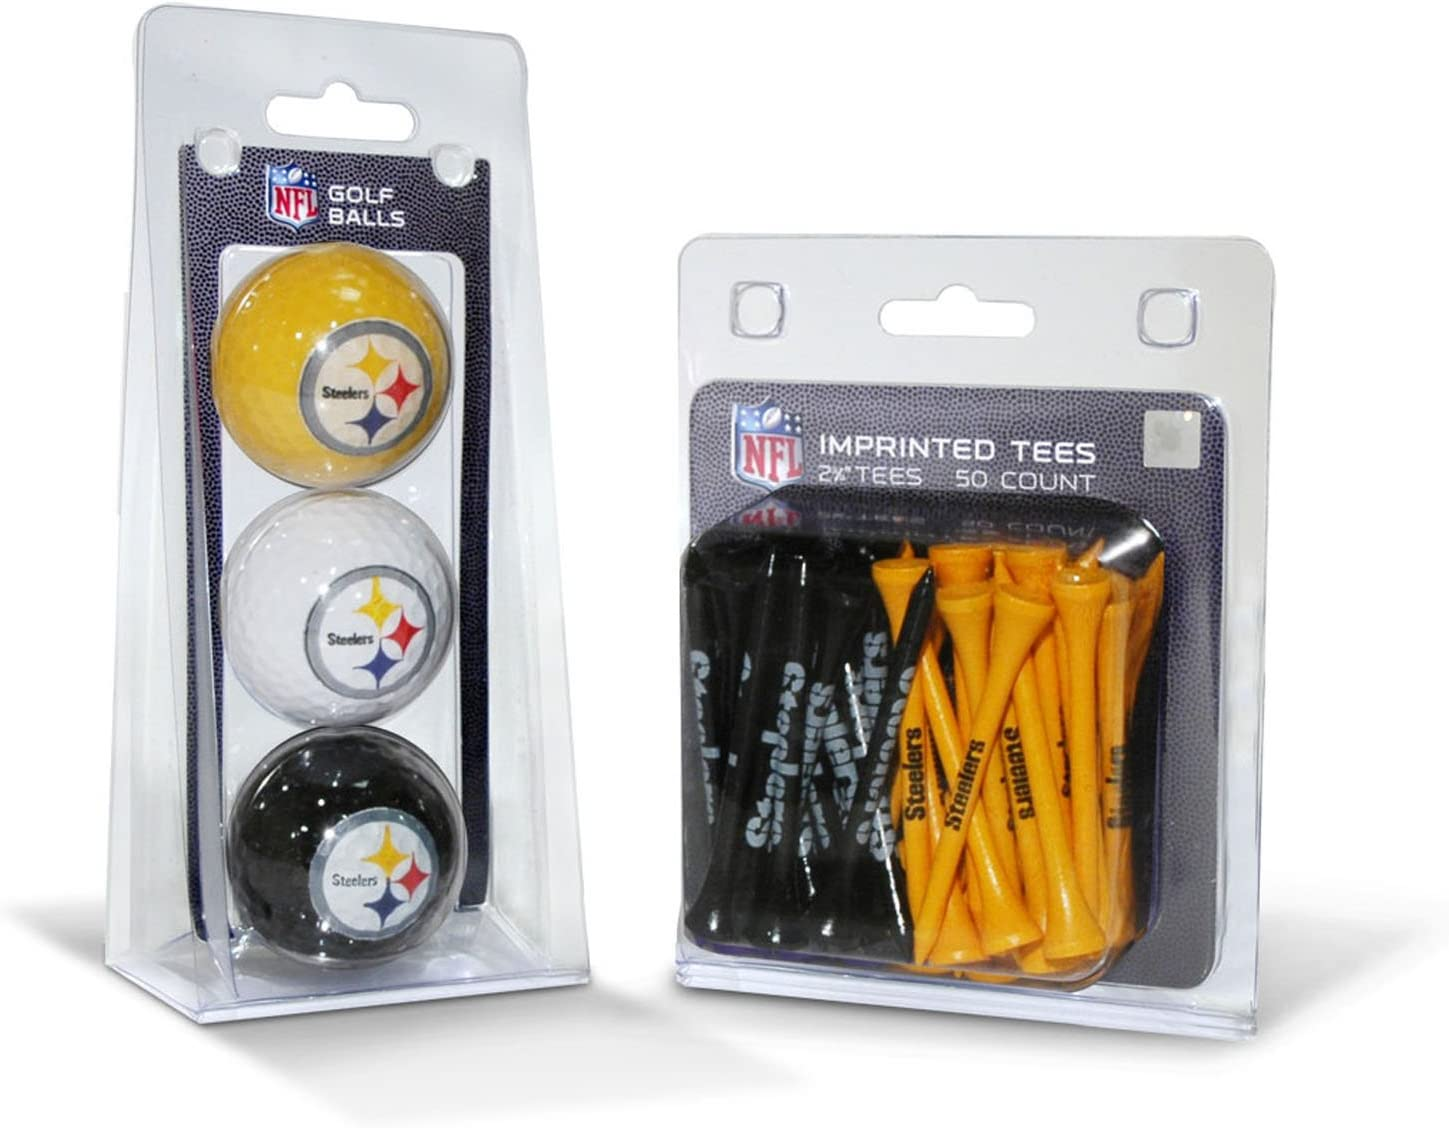 """Team Golf NFL Pittsburgh Steelers Logo Imprinted Golf Balls (3 Count) & 2-3/4"""" Regulation Golf Tees (50 Count), Multi Colored: Sports & Outdoors"""